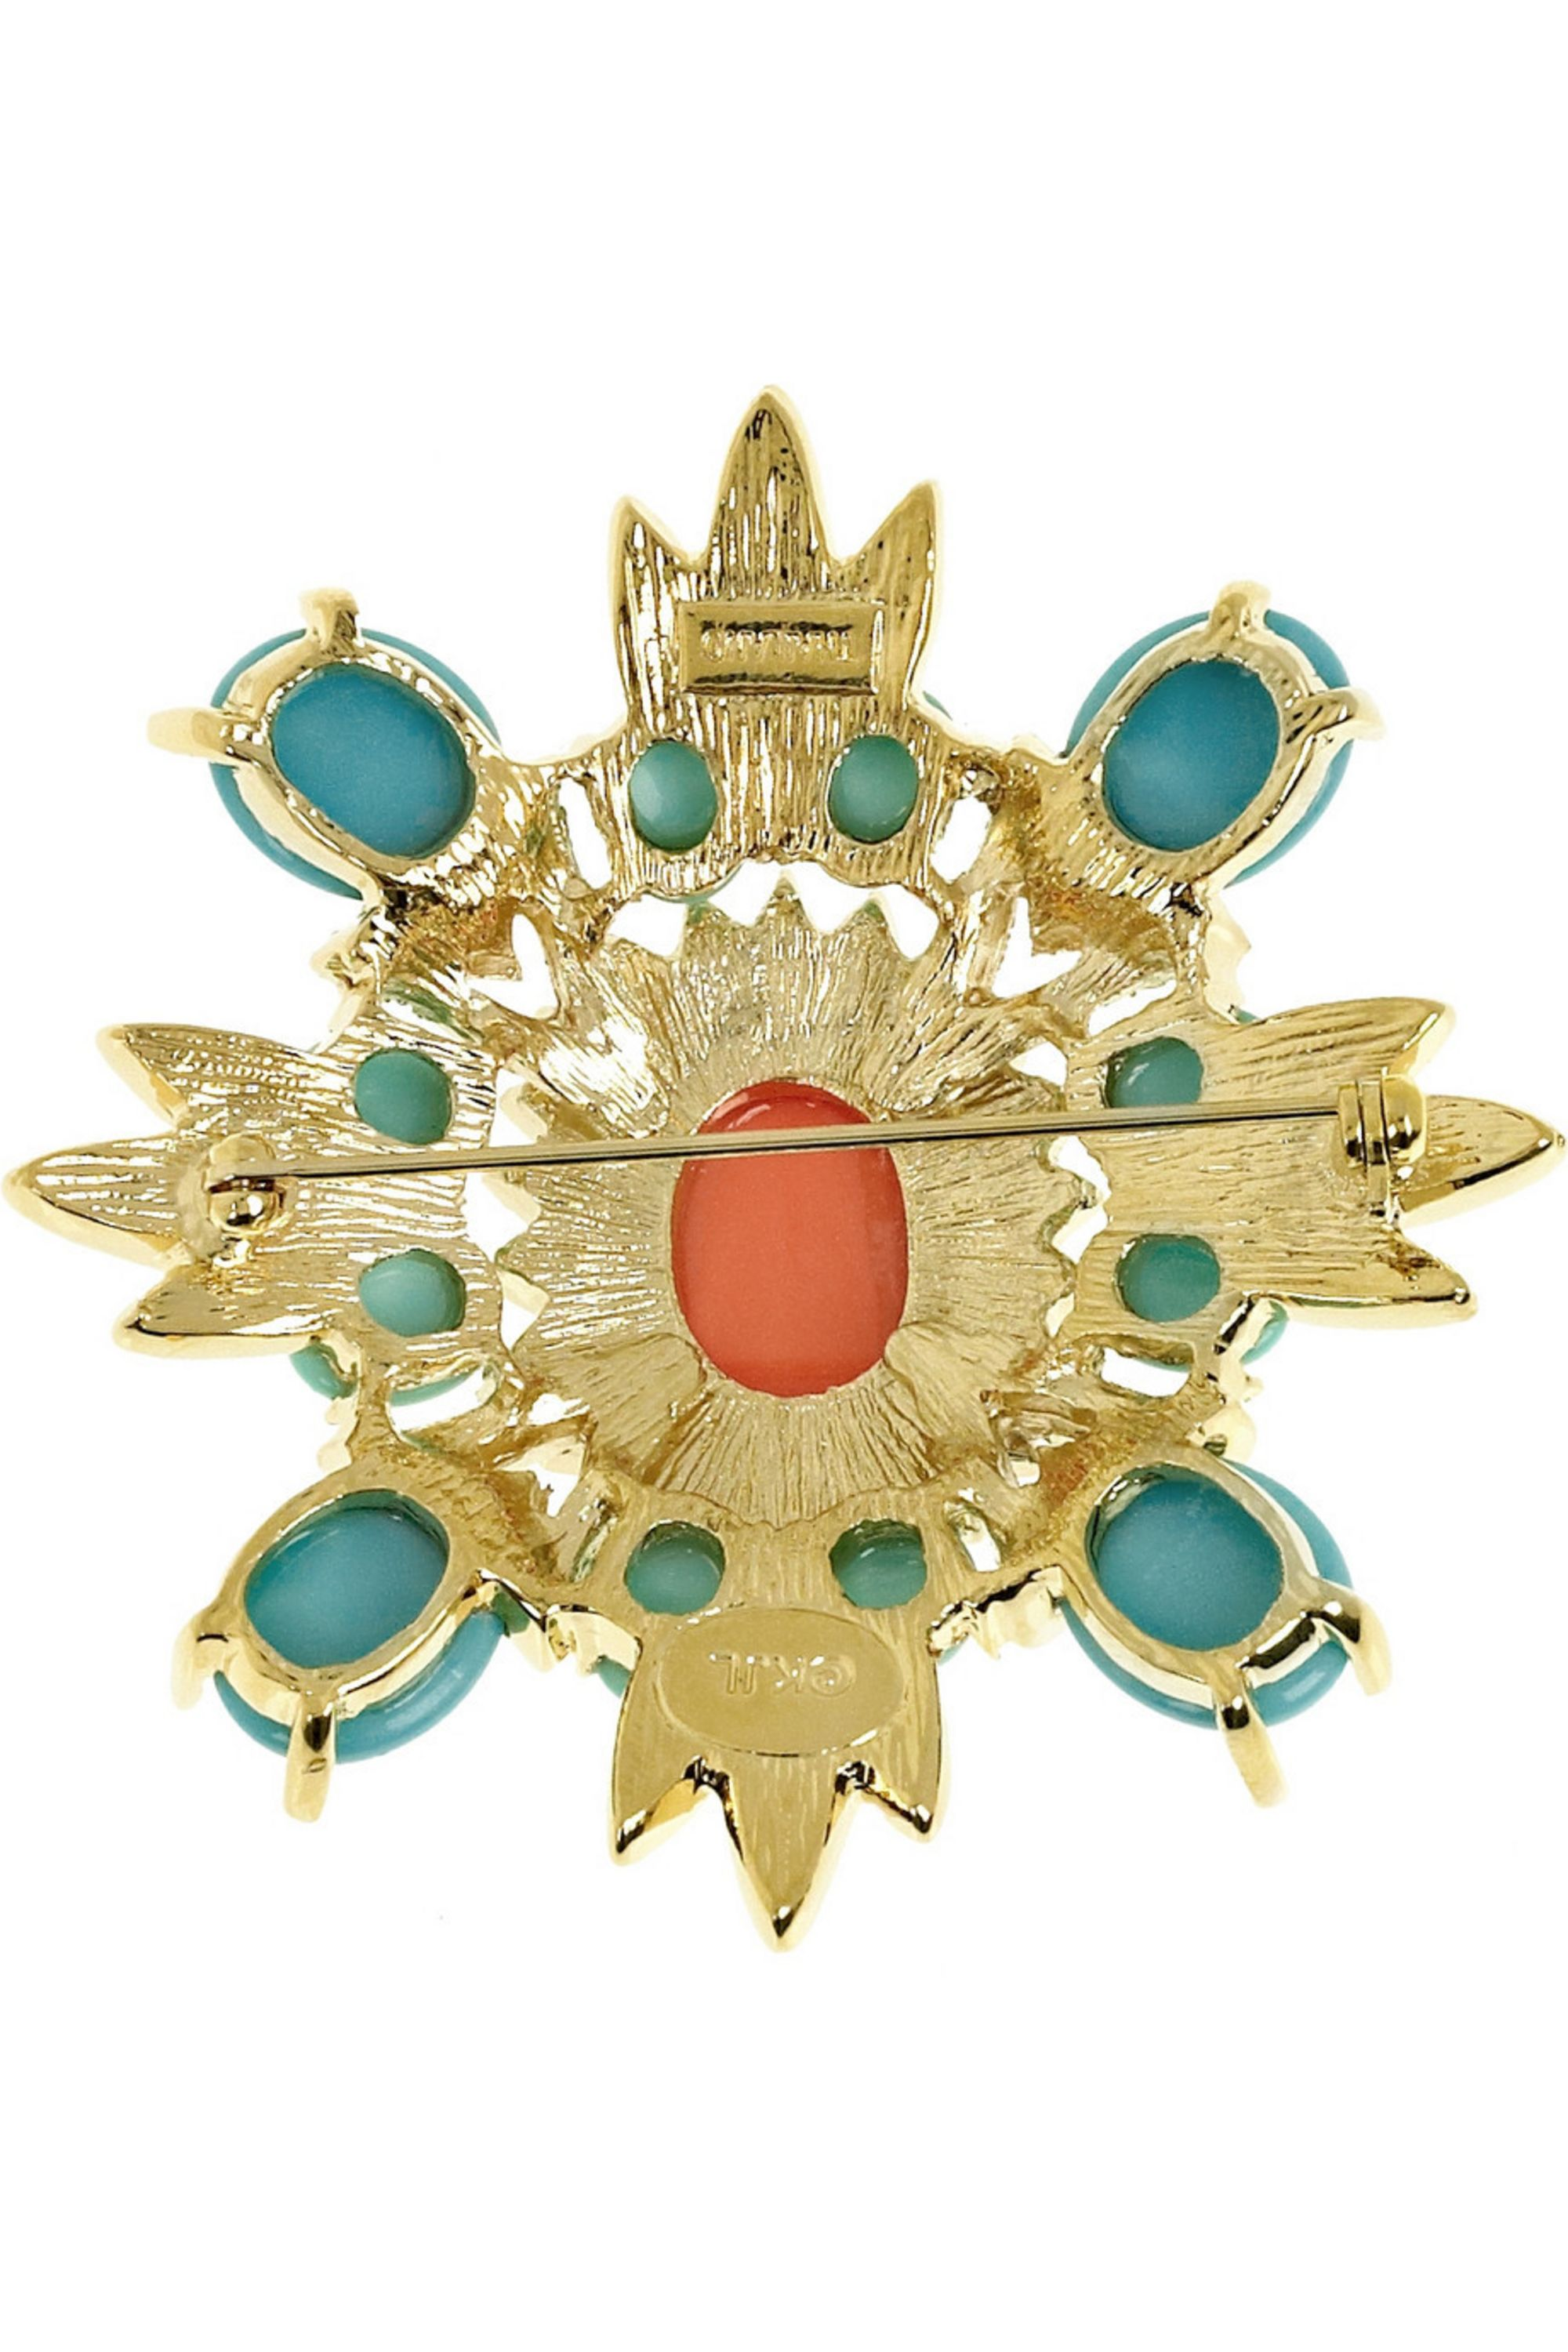 Kenneth Jay Lane 22-karat gold-plated Swarovski crystal brooch